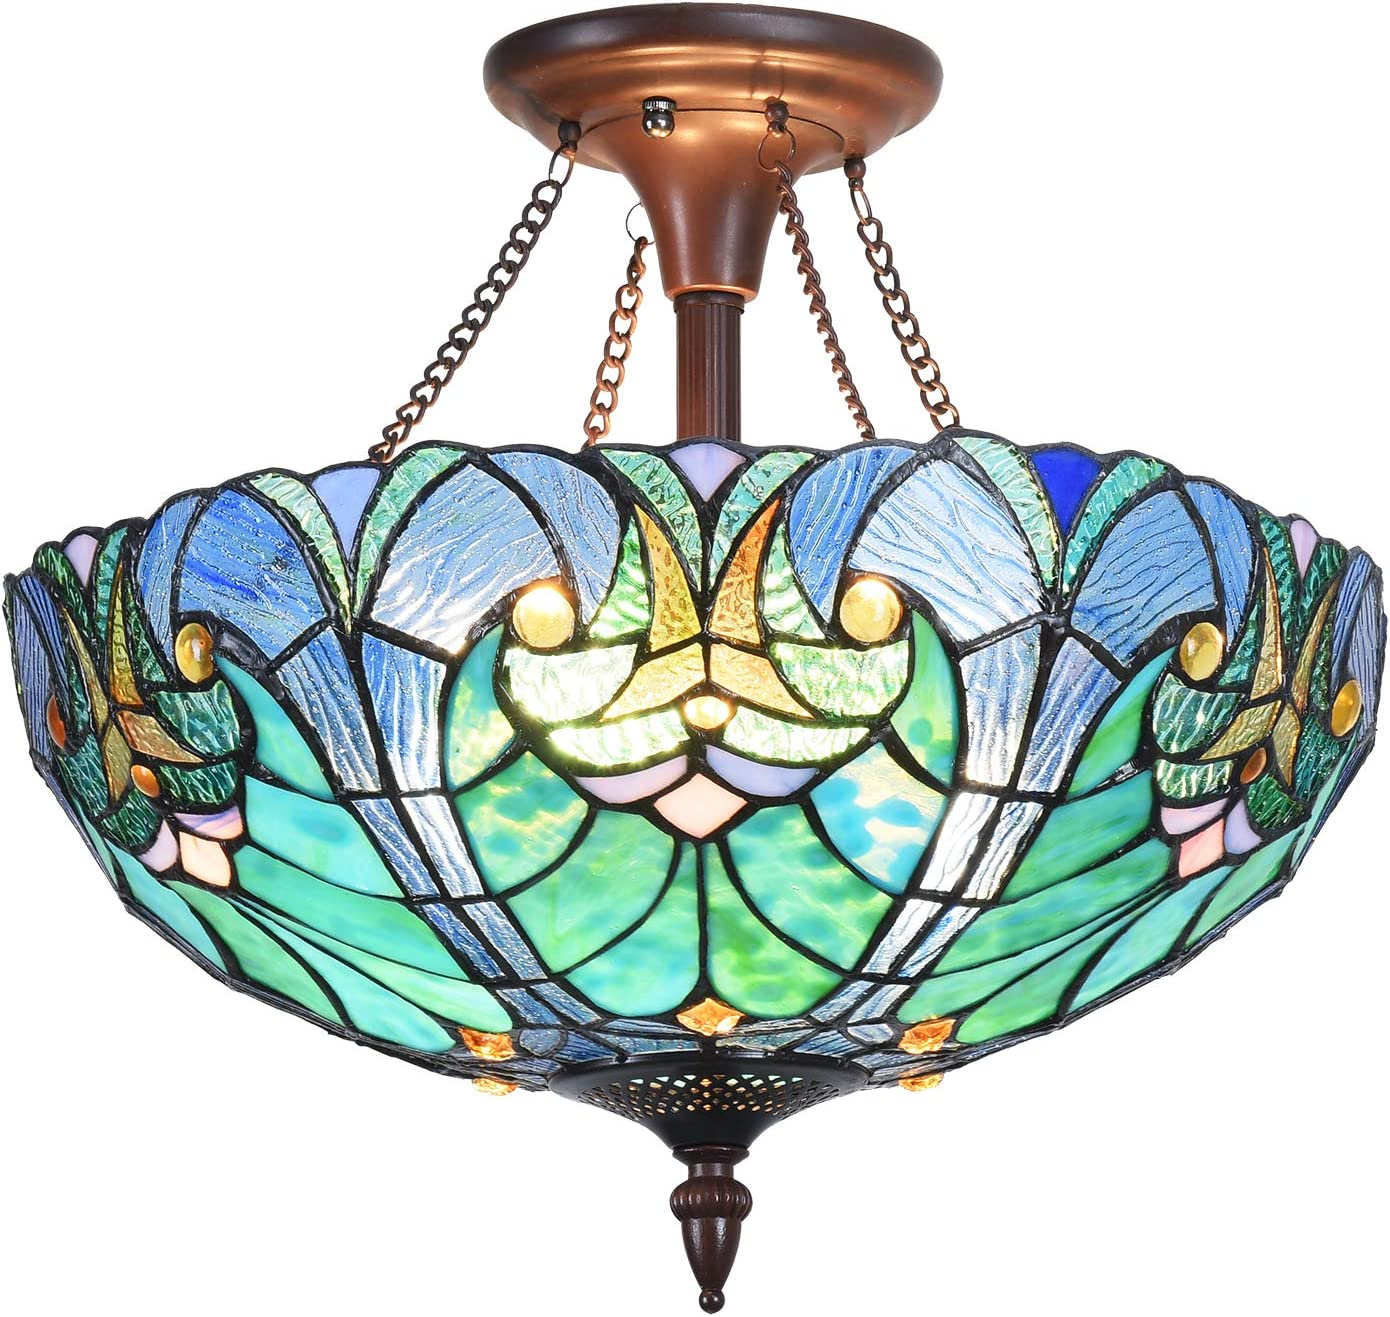 Cotoss Tiffany Style Ceiling Light Fixtures, 2-Light Semi Flush Tiffany Ceiling Lights, 16 Inch Wide Blue Stained Glass Ceiling Light, Tiffany Style Ceiling Flush Mount: Home Improvement